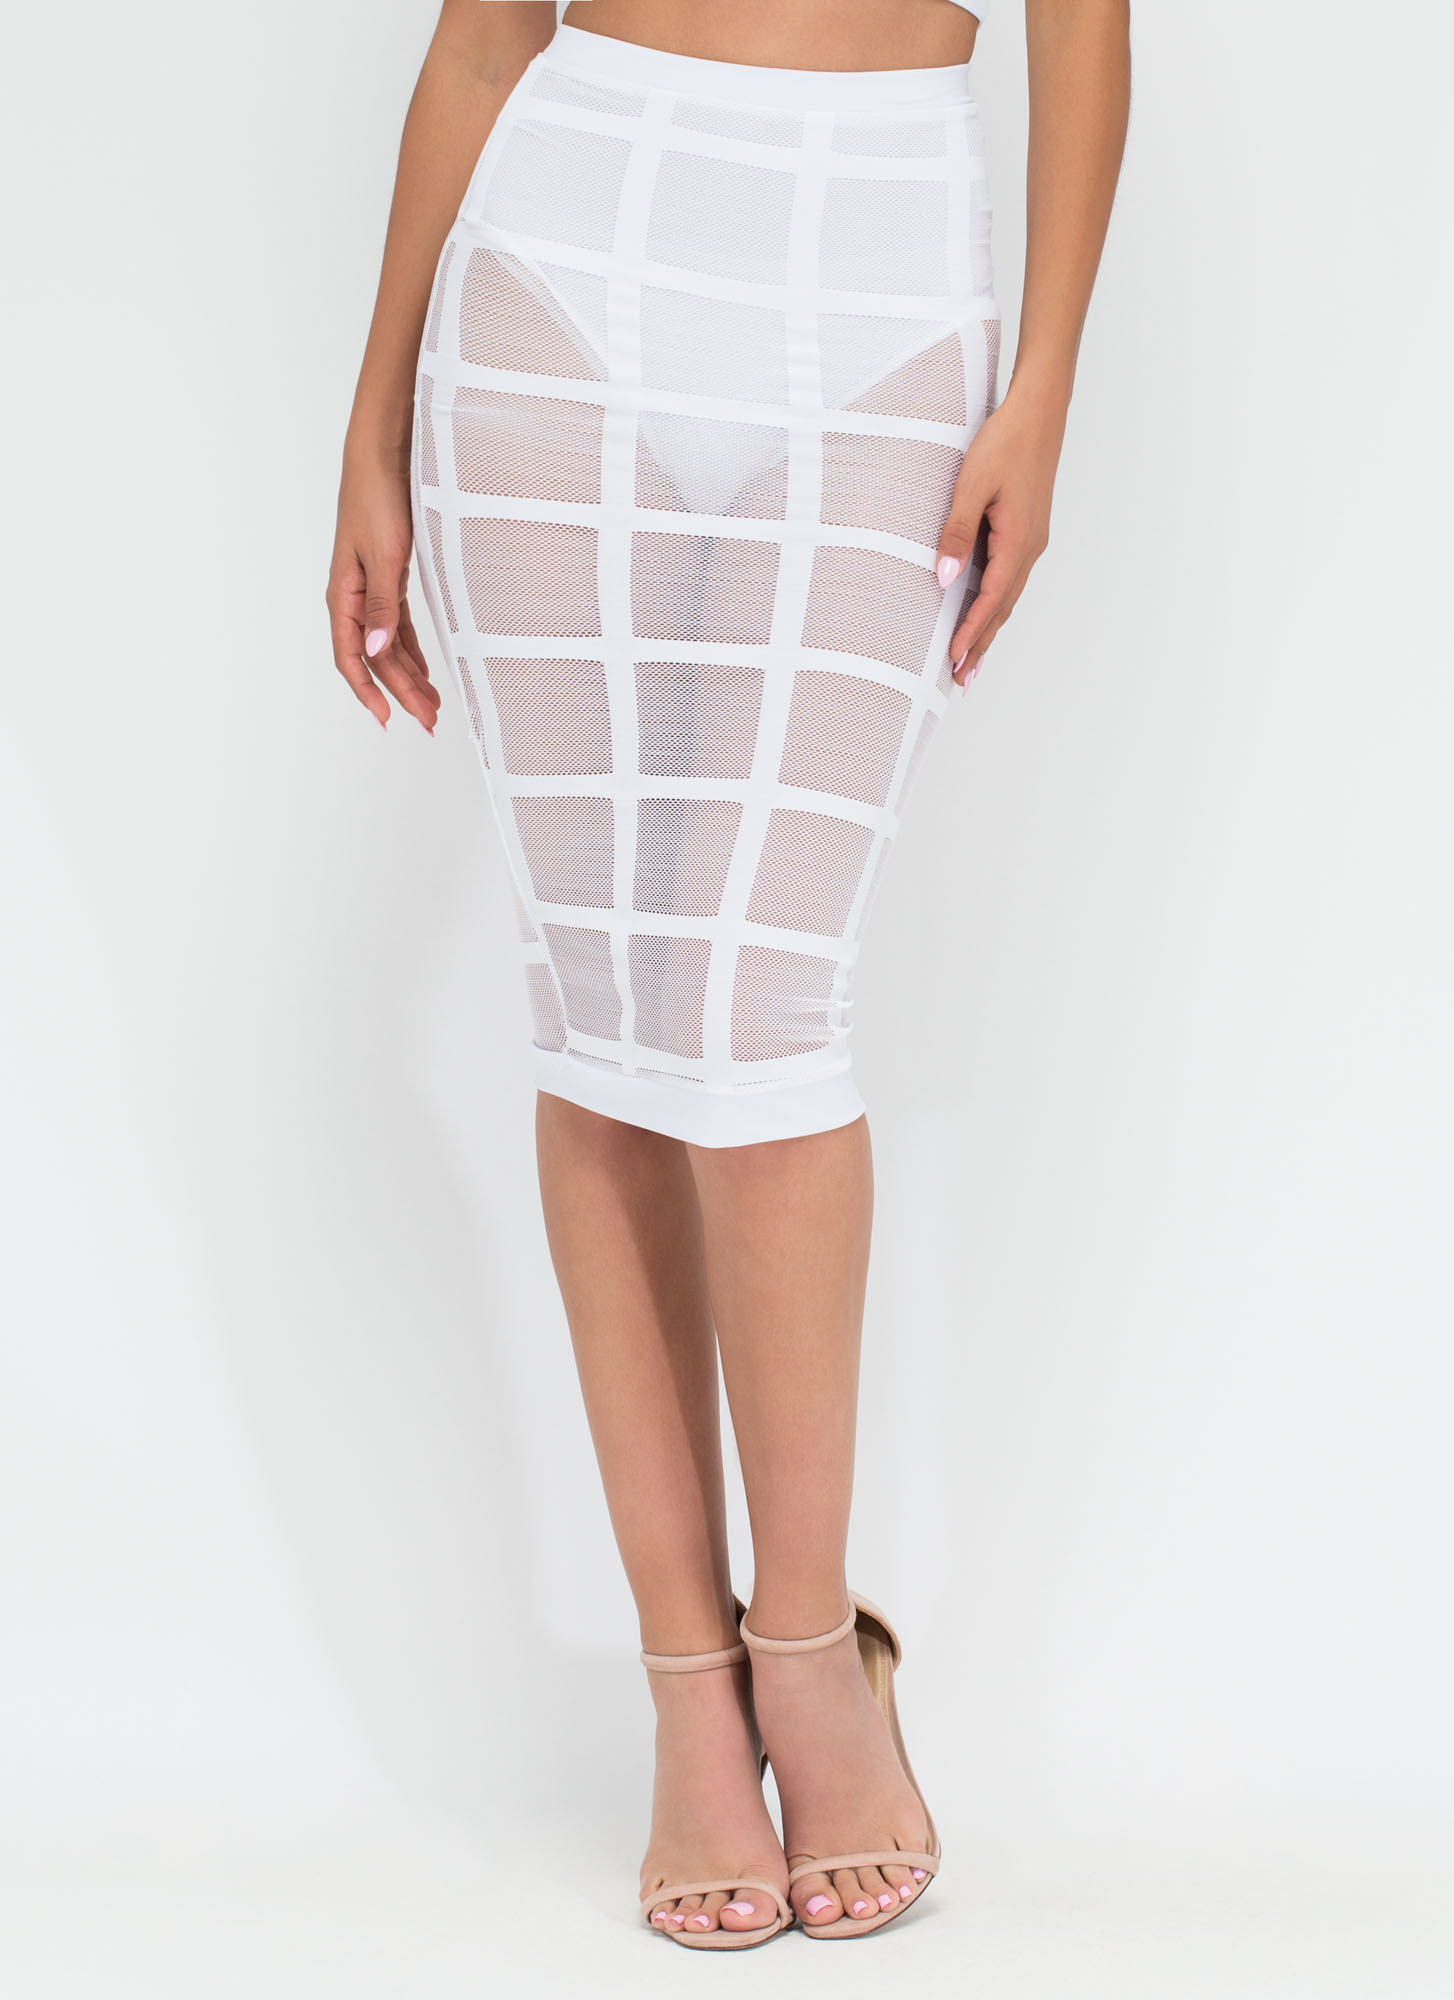 Grid Minds Sheer Pencil Skirt WHITE